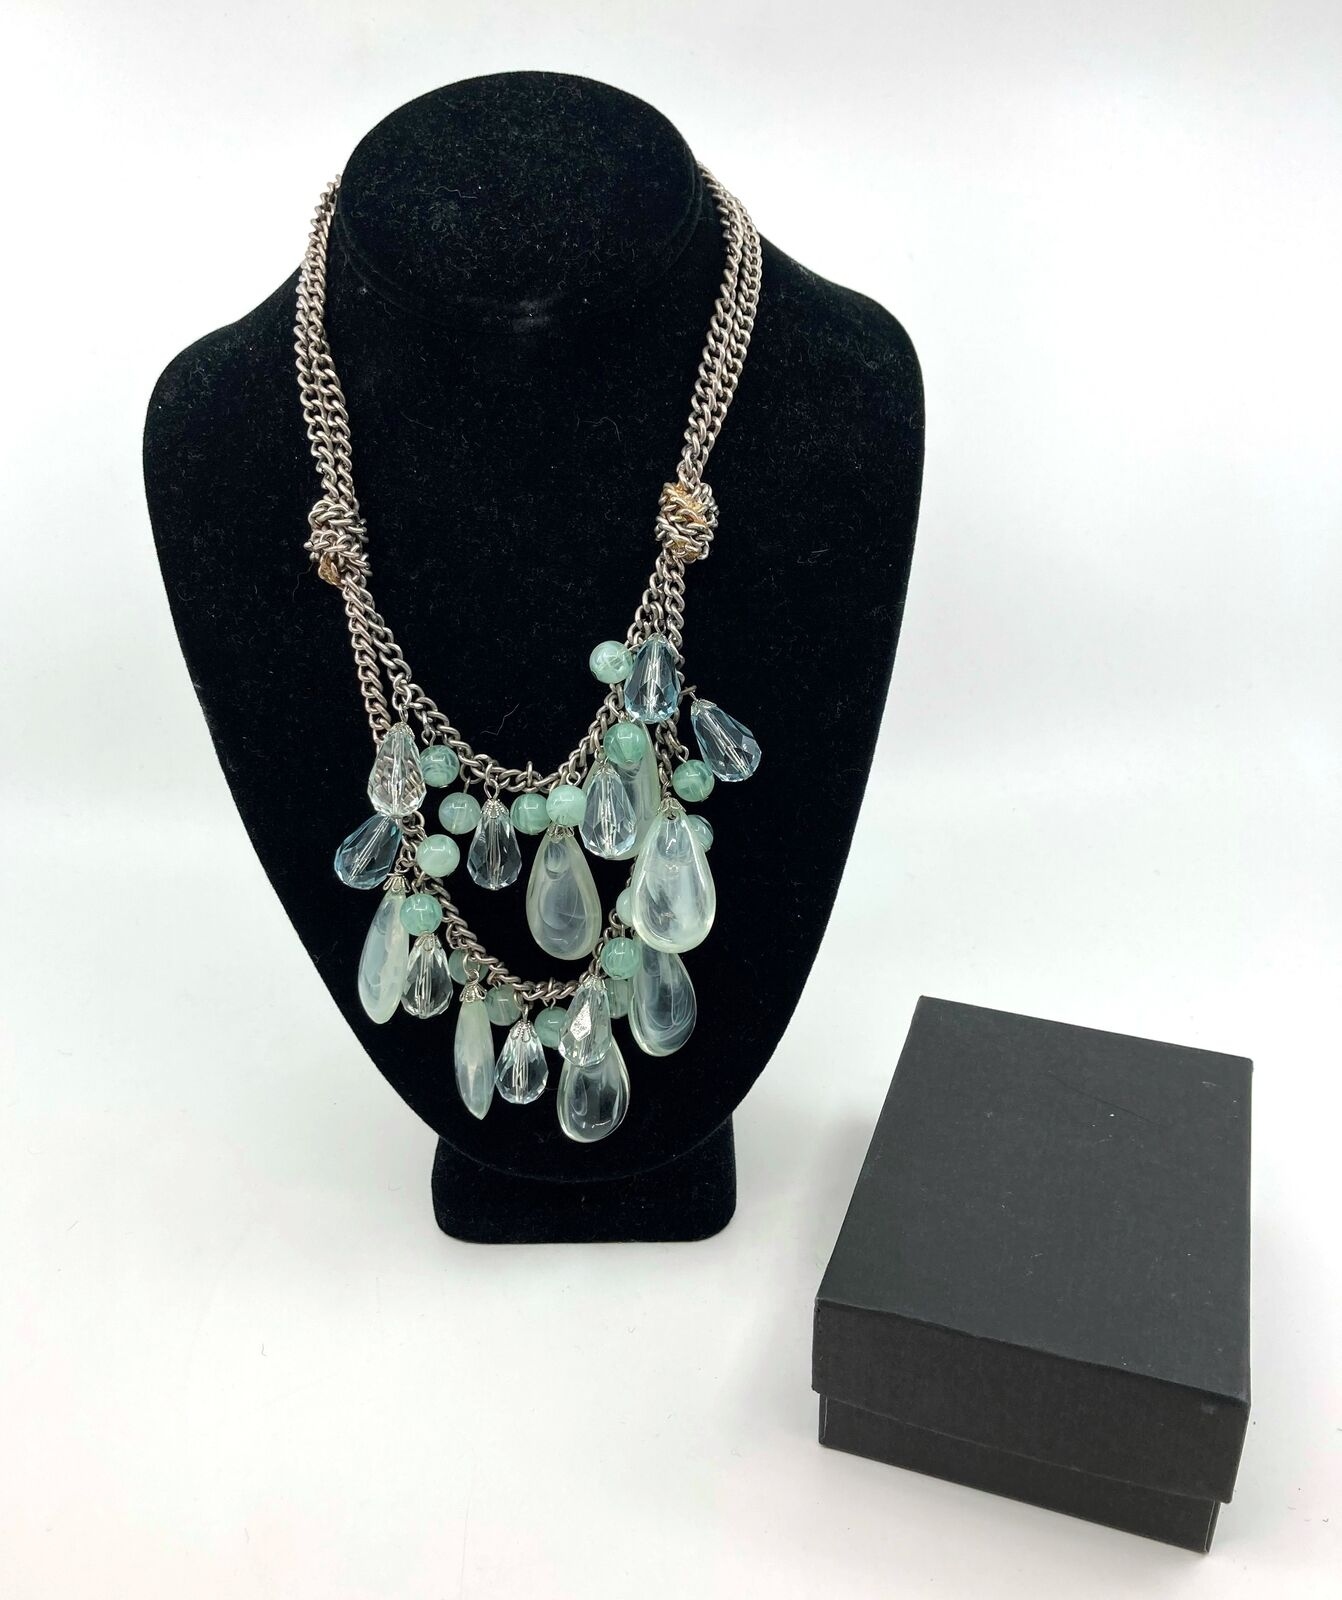 Ann Taylor LOFT Jewelry Women's Turquoise & Silver Beaded Statement Necklace